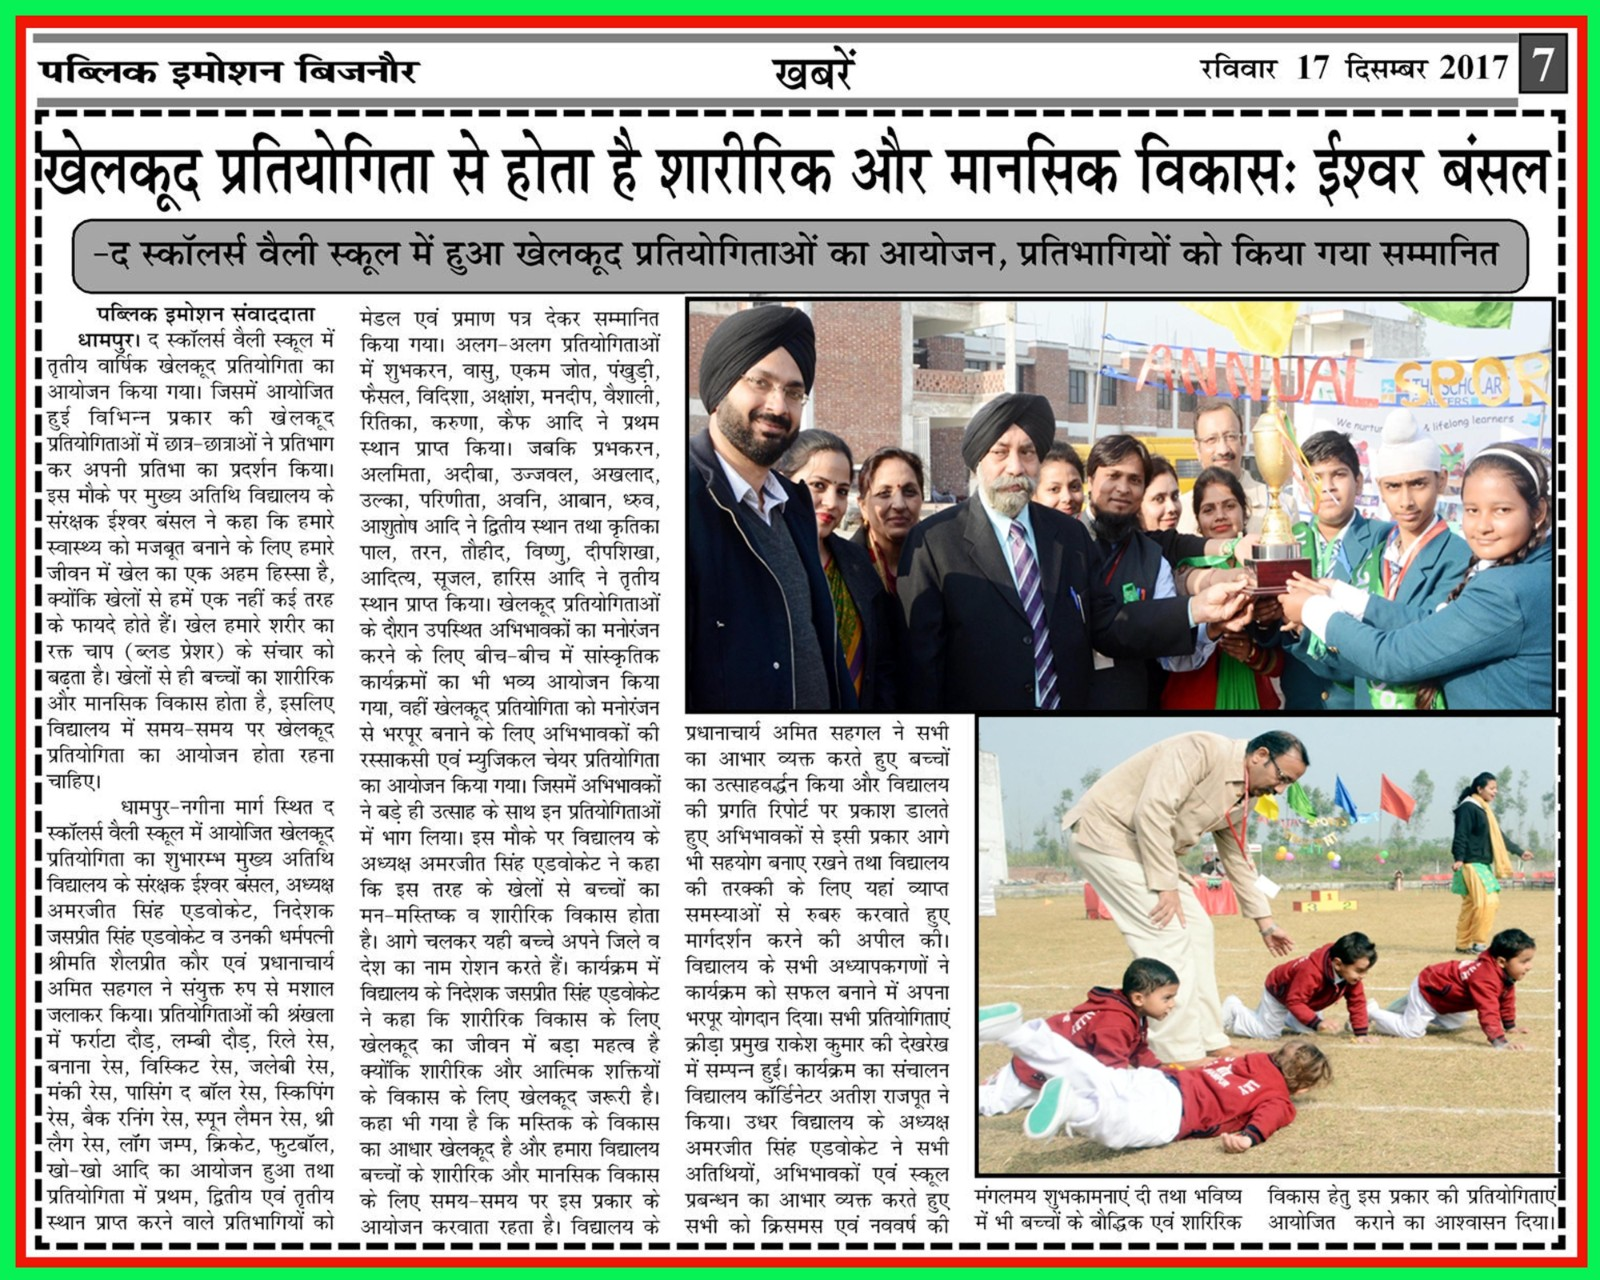 Public Emotion - Bijnor - 17.12.2017